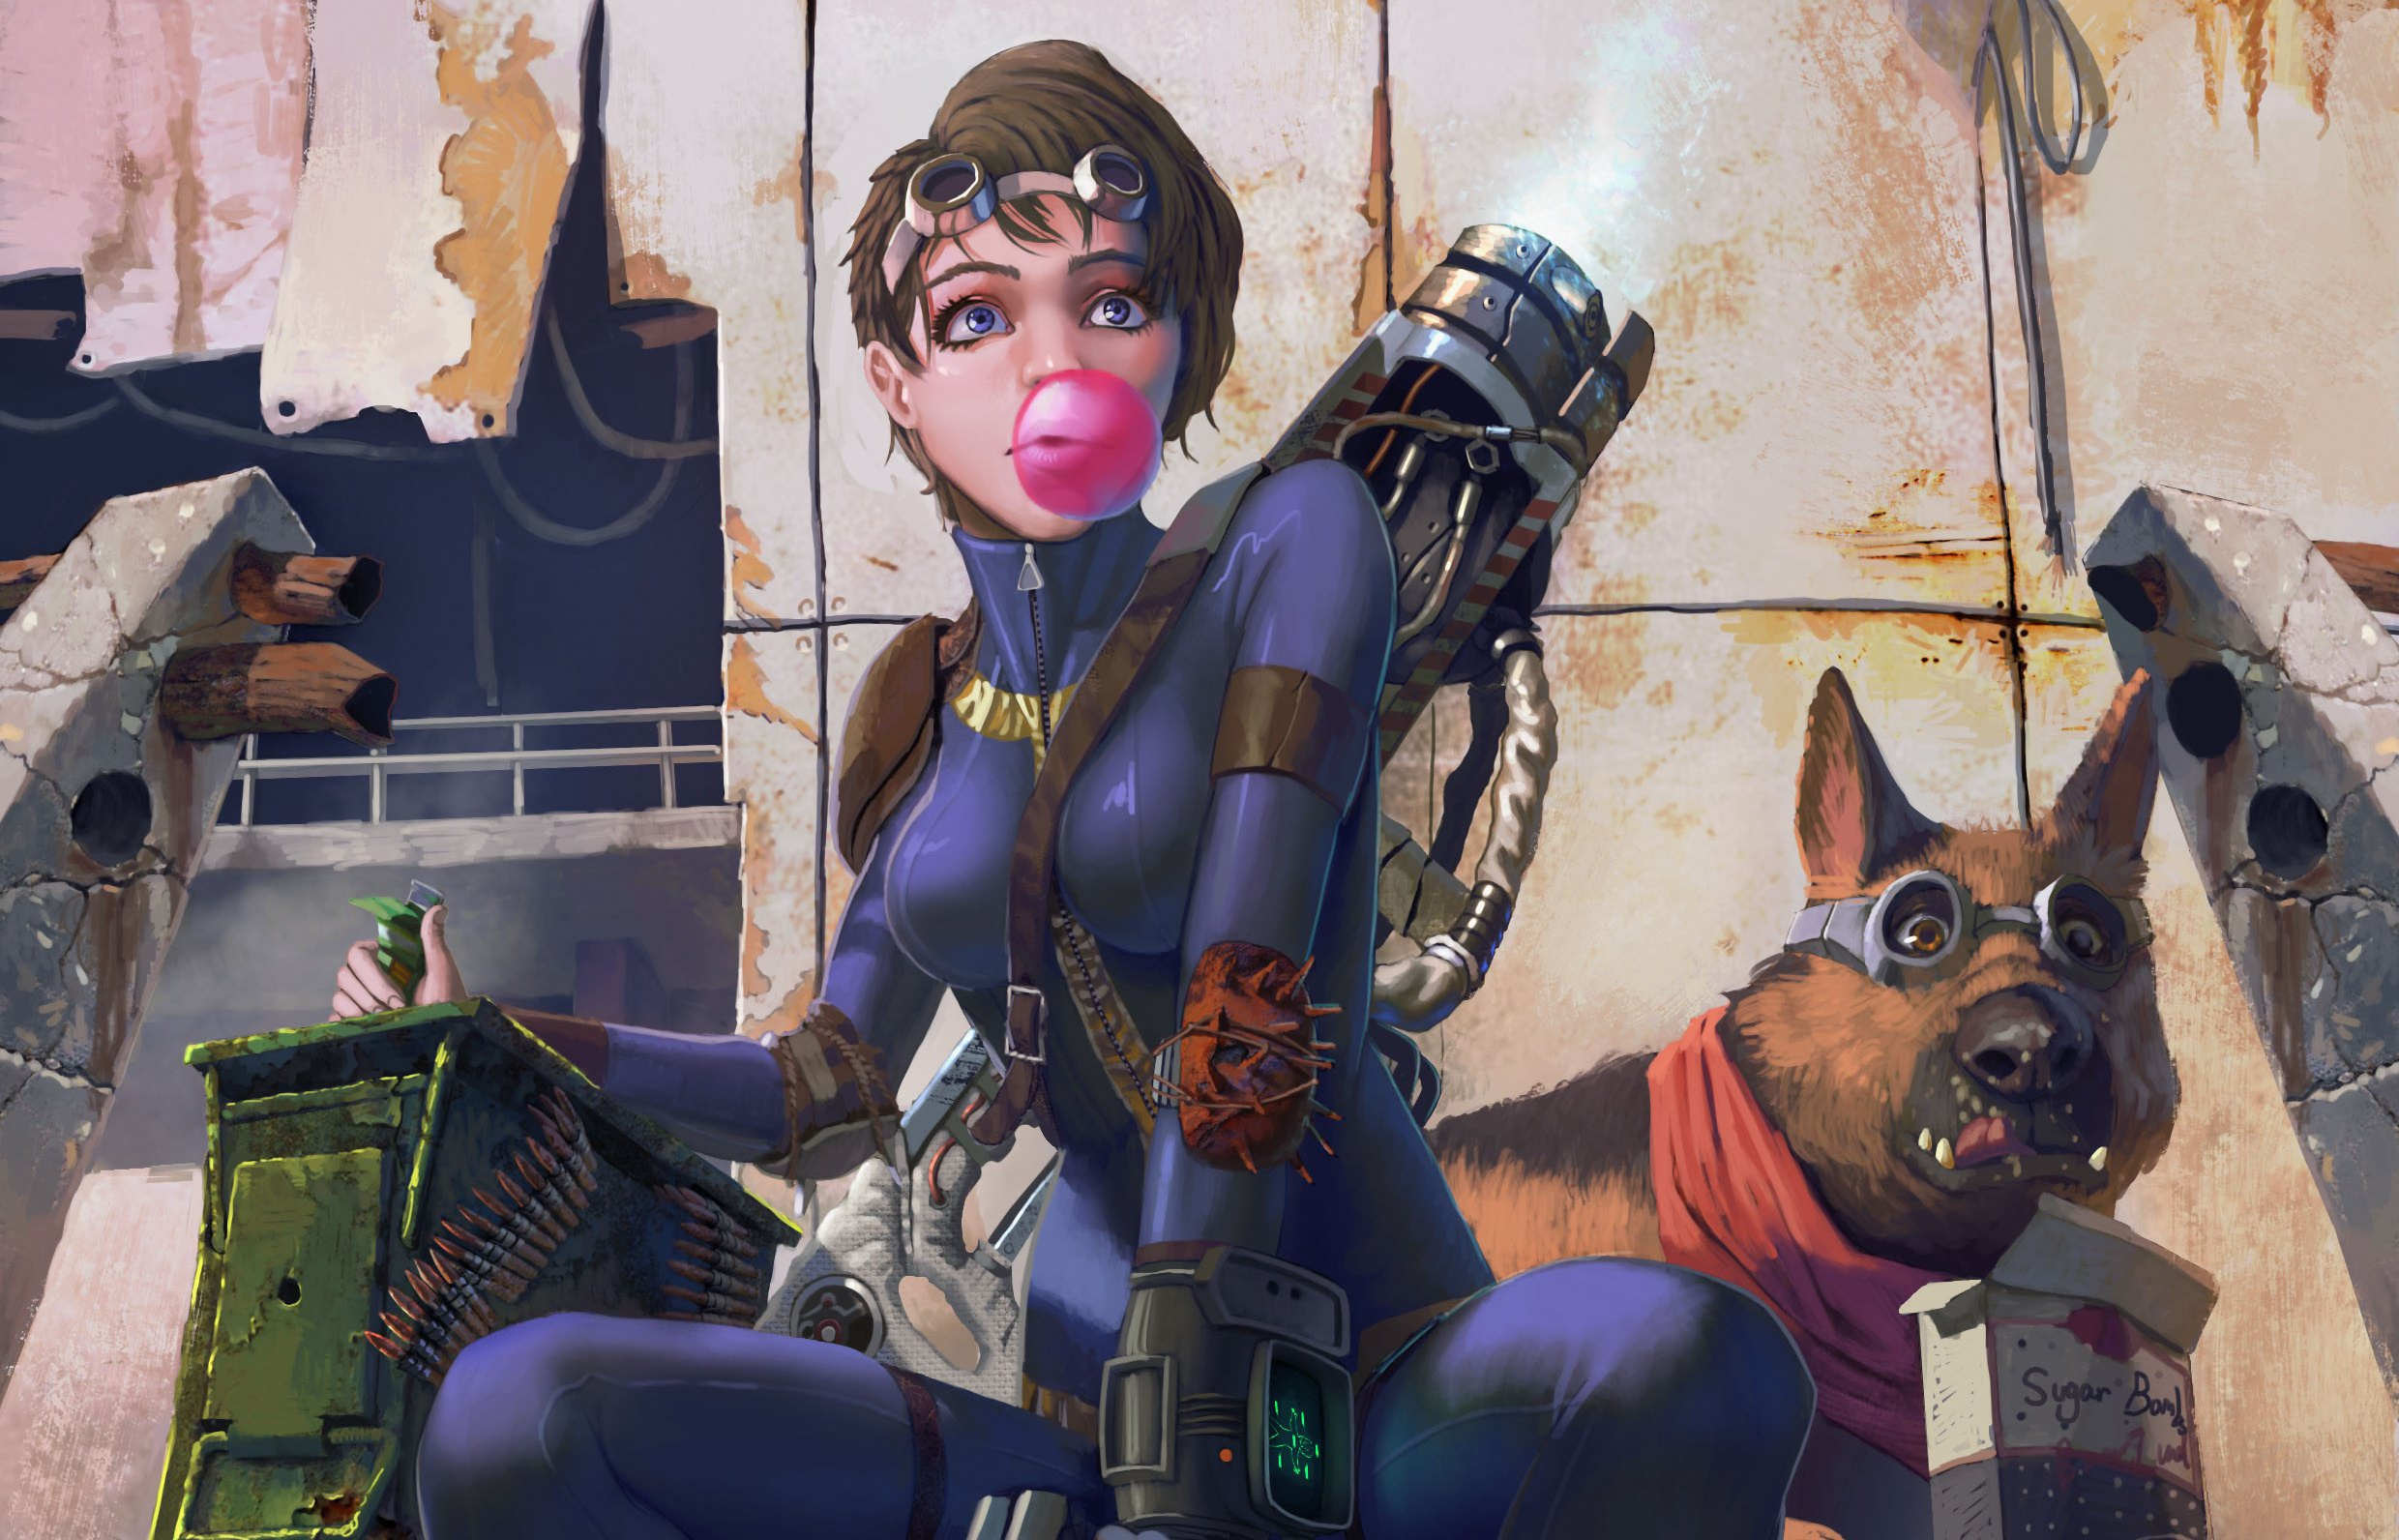 Fallout 4k Game Artwork, HD Games, 4k Wallpapers, Images ...